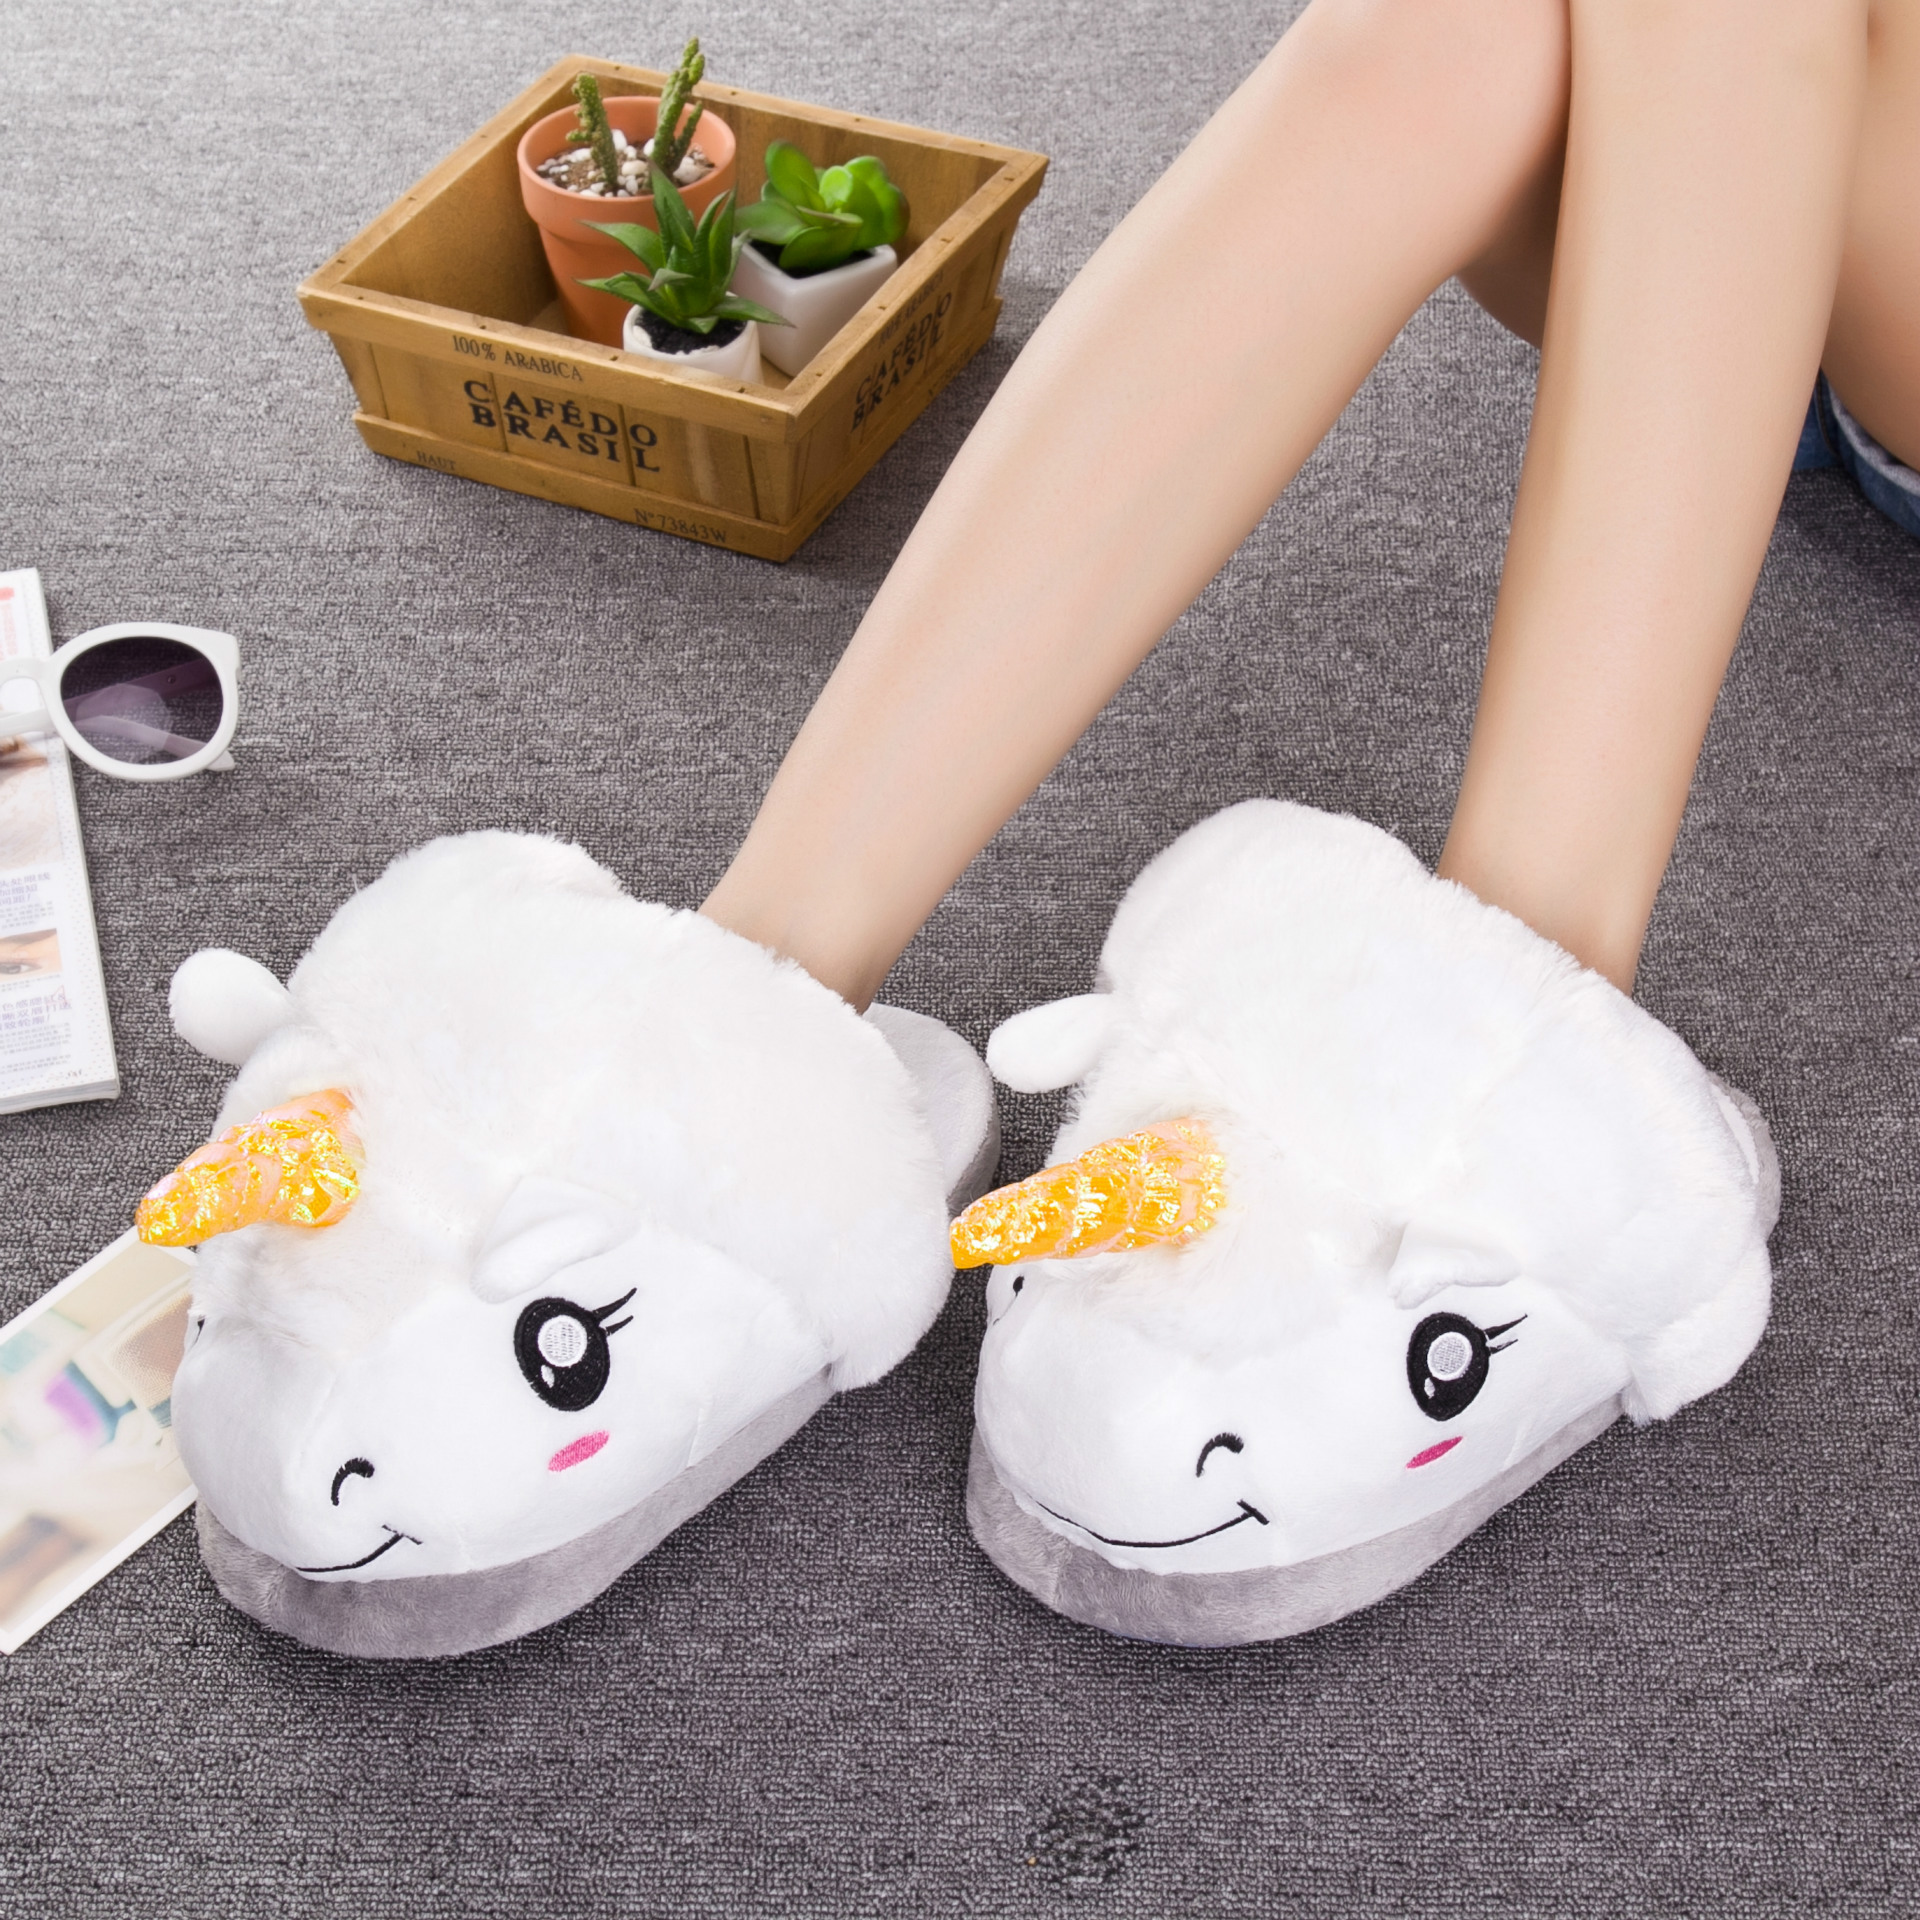 Adult Plush Unicorn Slippers For Women Home Cute Shoes Cartoon Winter Warm Unisex Indoor Christmas Chausson Licorne Size 36-41 new 2017 house shoes cute happy big feet style giant toe footwear winter warm plush slippers soft unisex indoor shoes